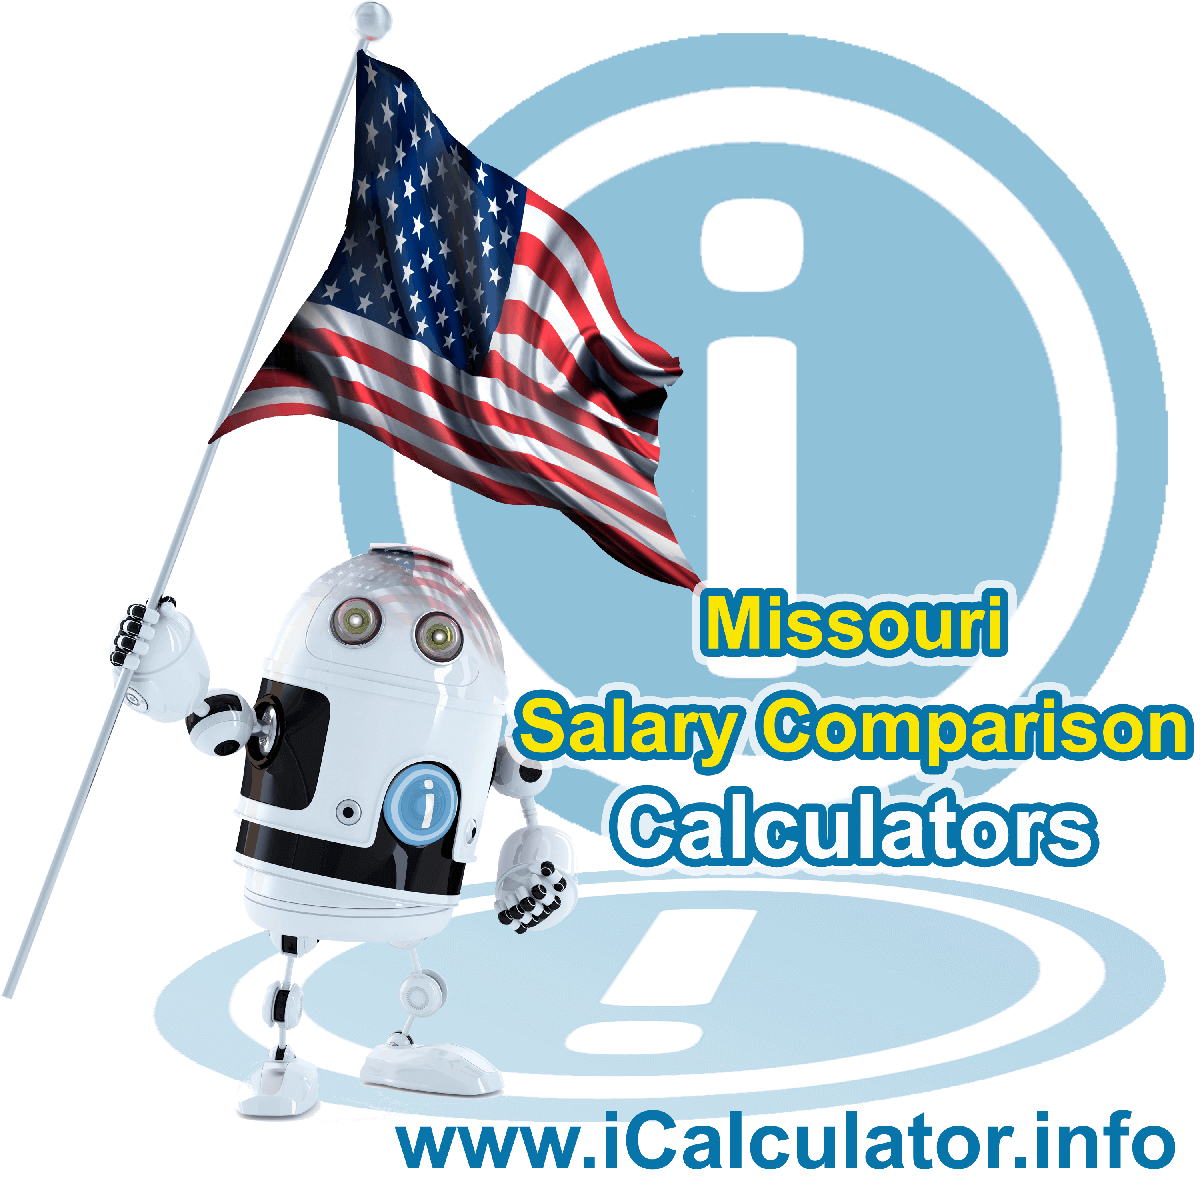 Missouri Salary Comparison Calculator 2020 | iCalculator | The Missouri Salary Comparison Calculator allows you to quickly calculate and compare upto 6 salaries in Missouri or between other states for the 2020 tax year and historical tax years. Its an excellent tool for jobseekers, pay raise comparison and comparison of salaries between different US States